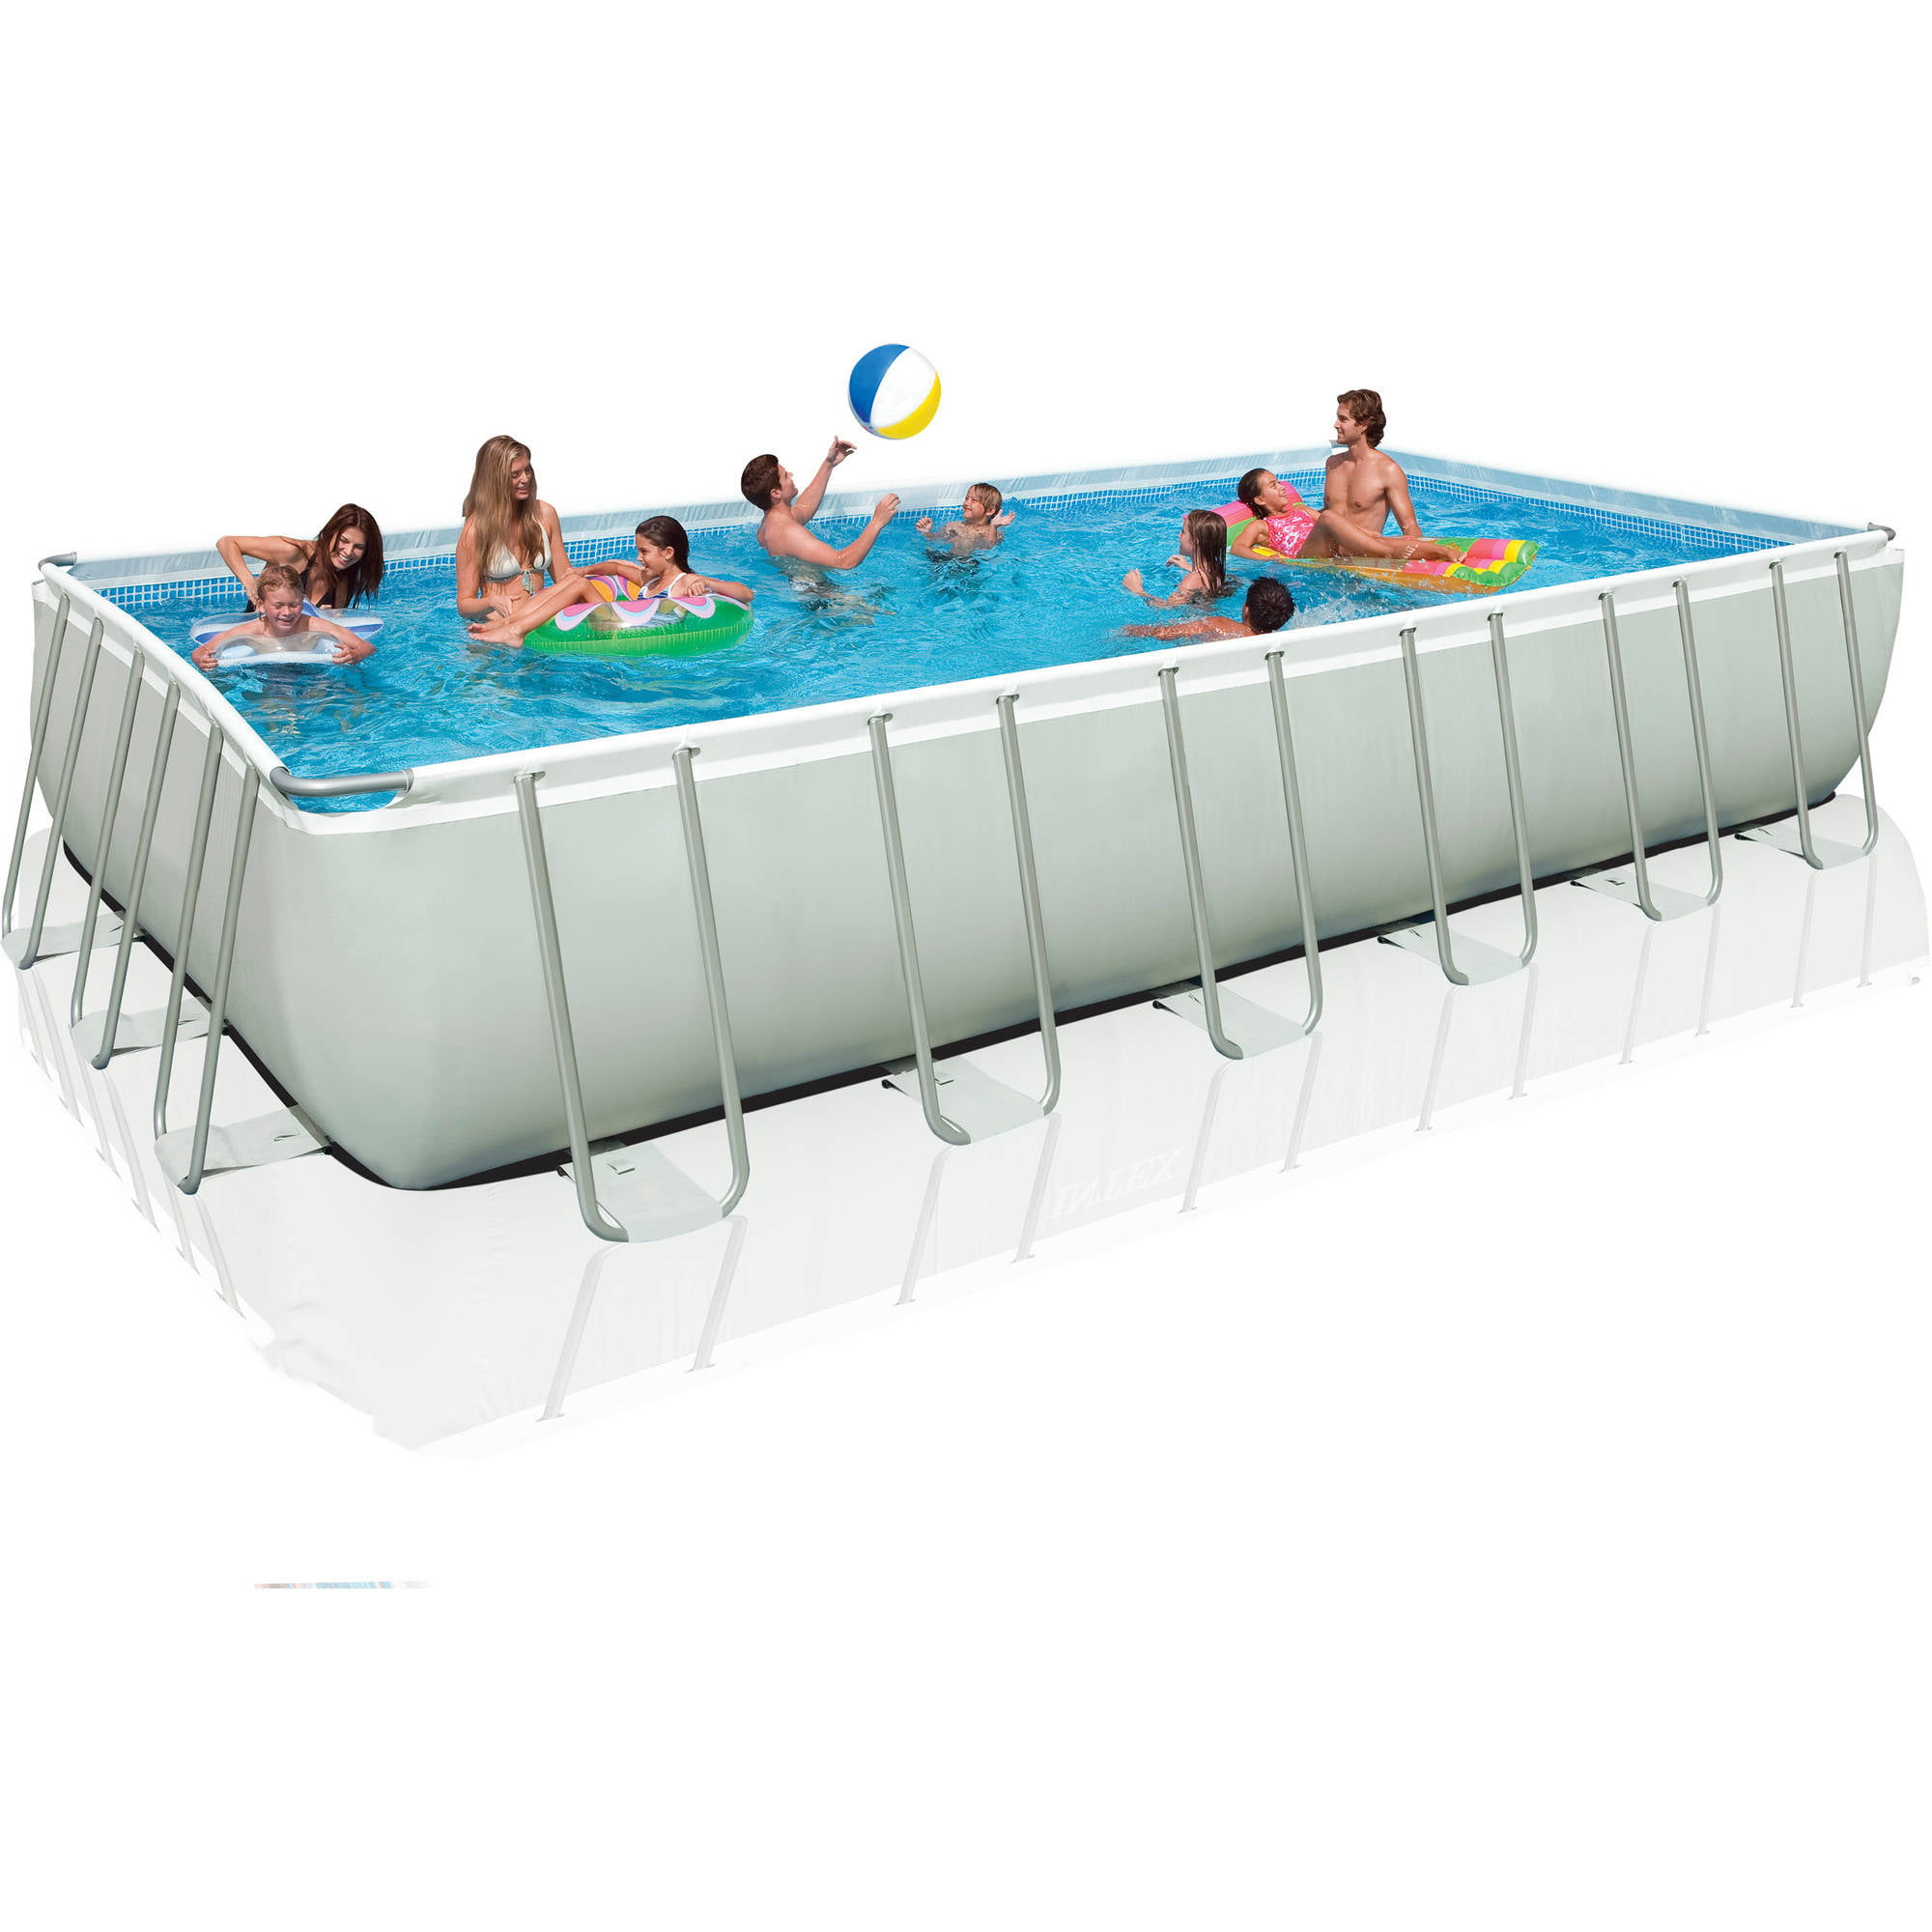 intex 24 x 12 x 52 ultra frame rectangular above ground swimming pool with sand filter pump walmartcom - Rectangle Inflatable Pool